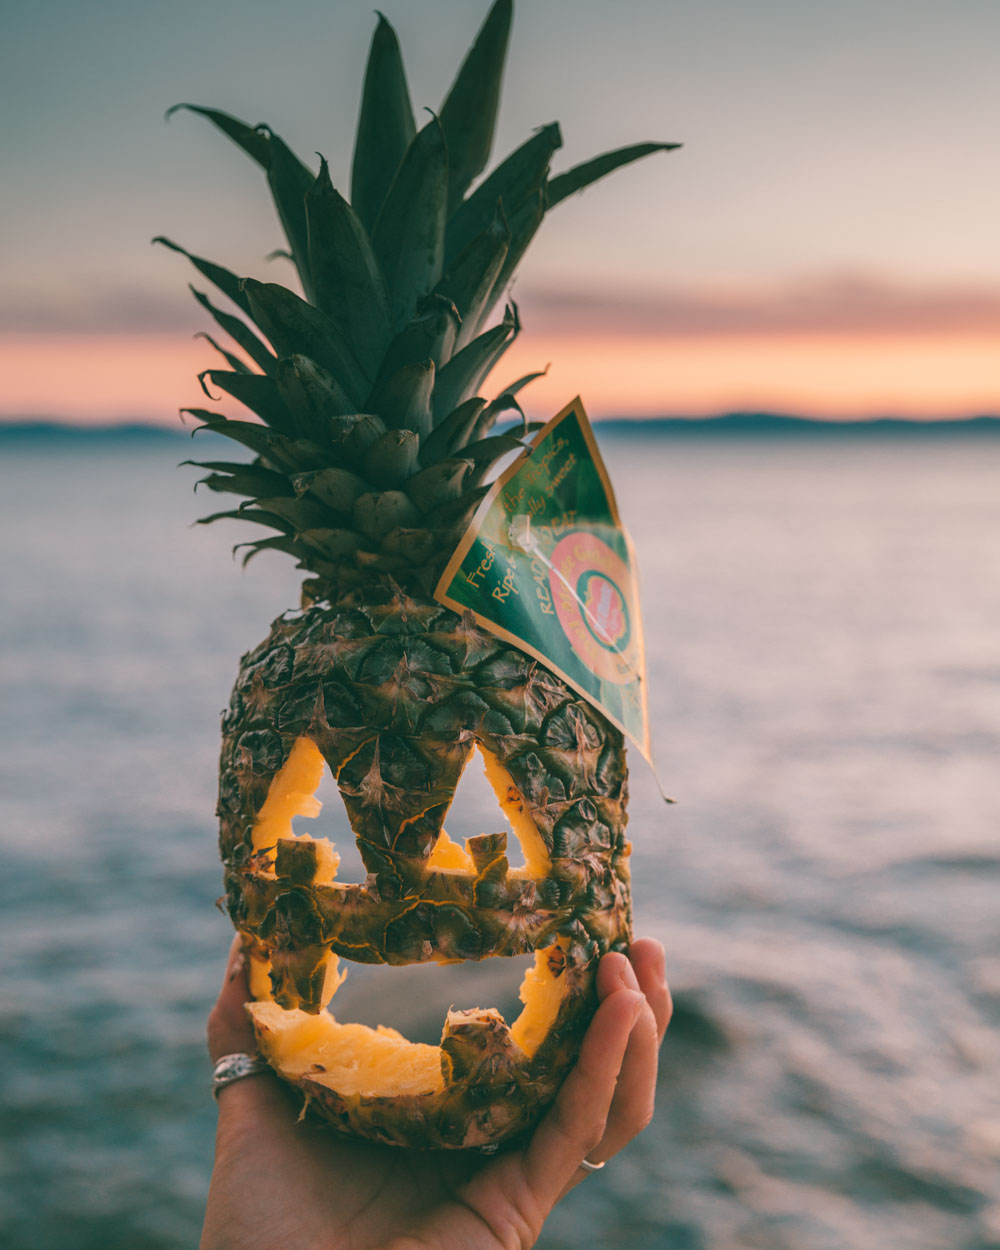 Halloween+Pineapple+Jack-O+by+Madeline+Lu+@lumadeline.jpeg